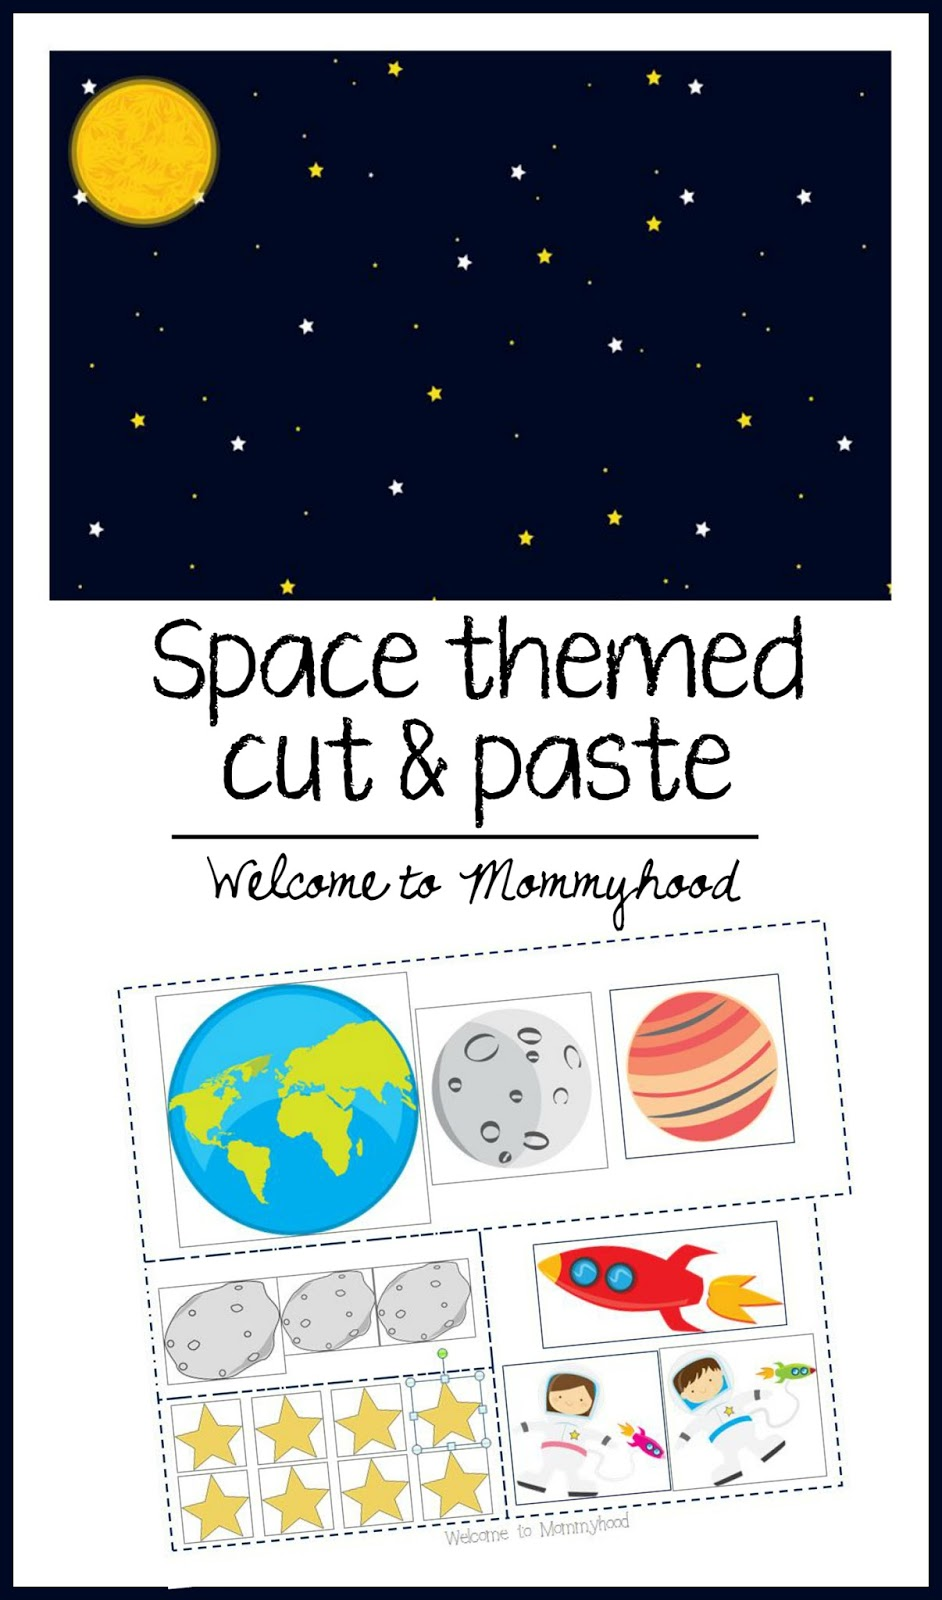 Space themed cut and paste - Welcome to Mommyhood